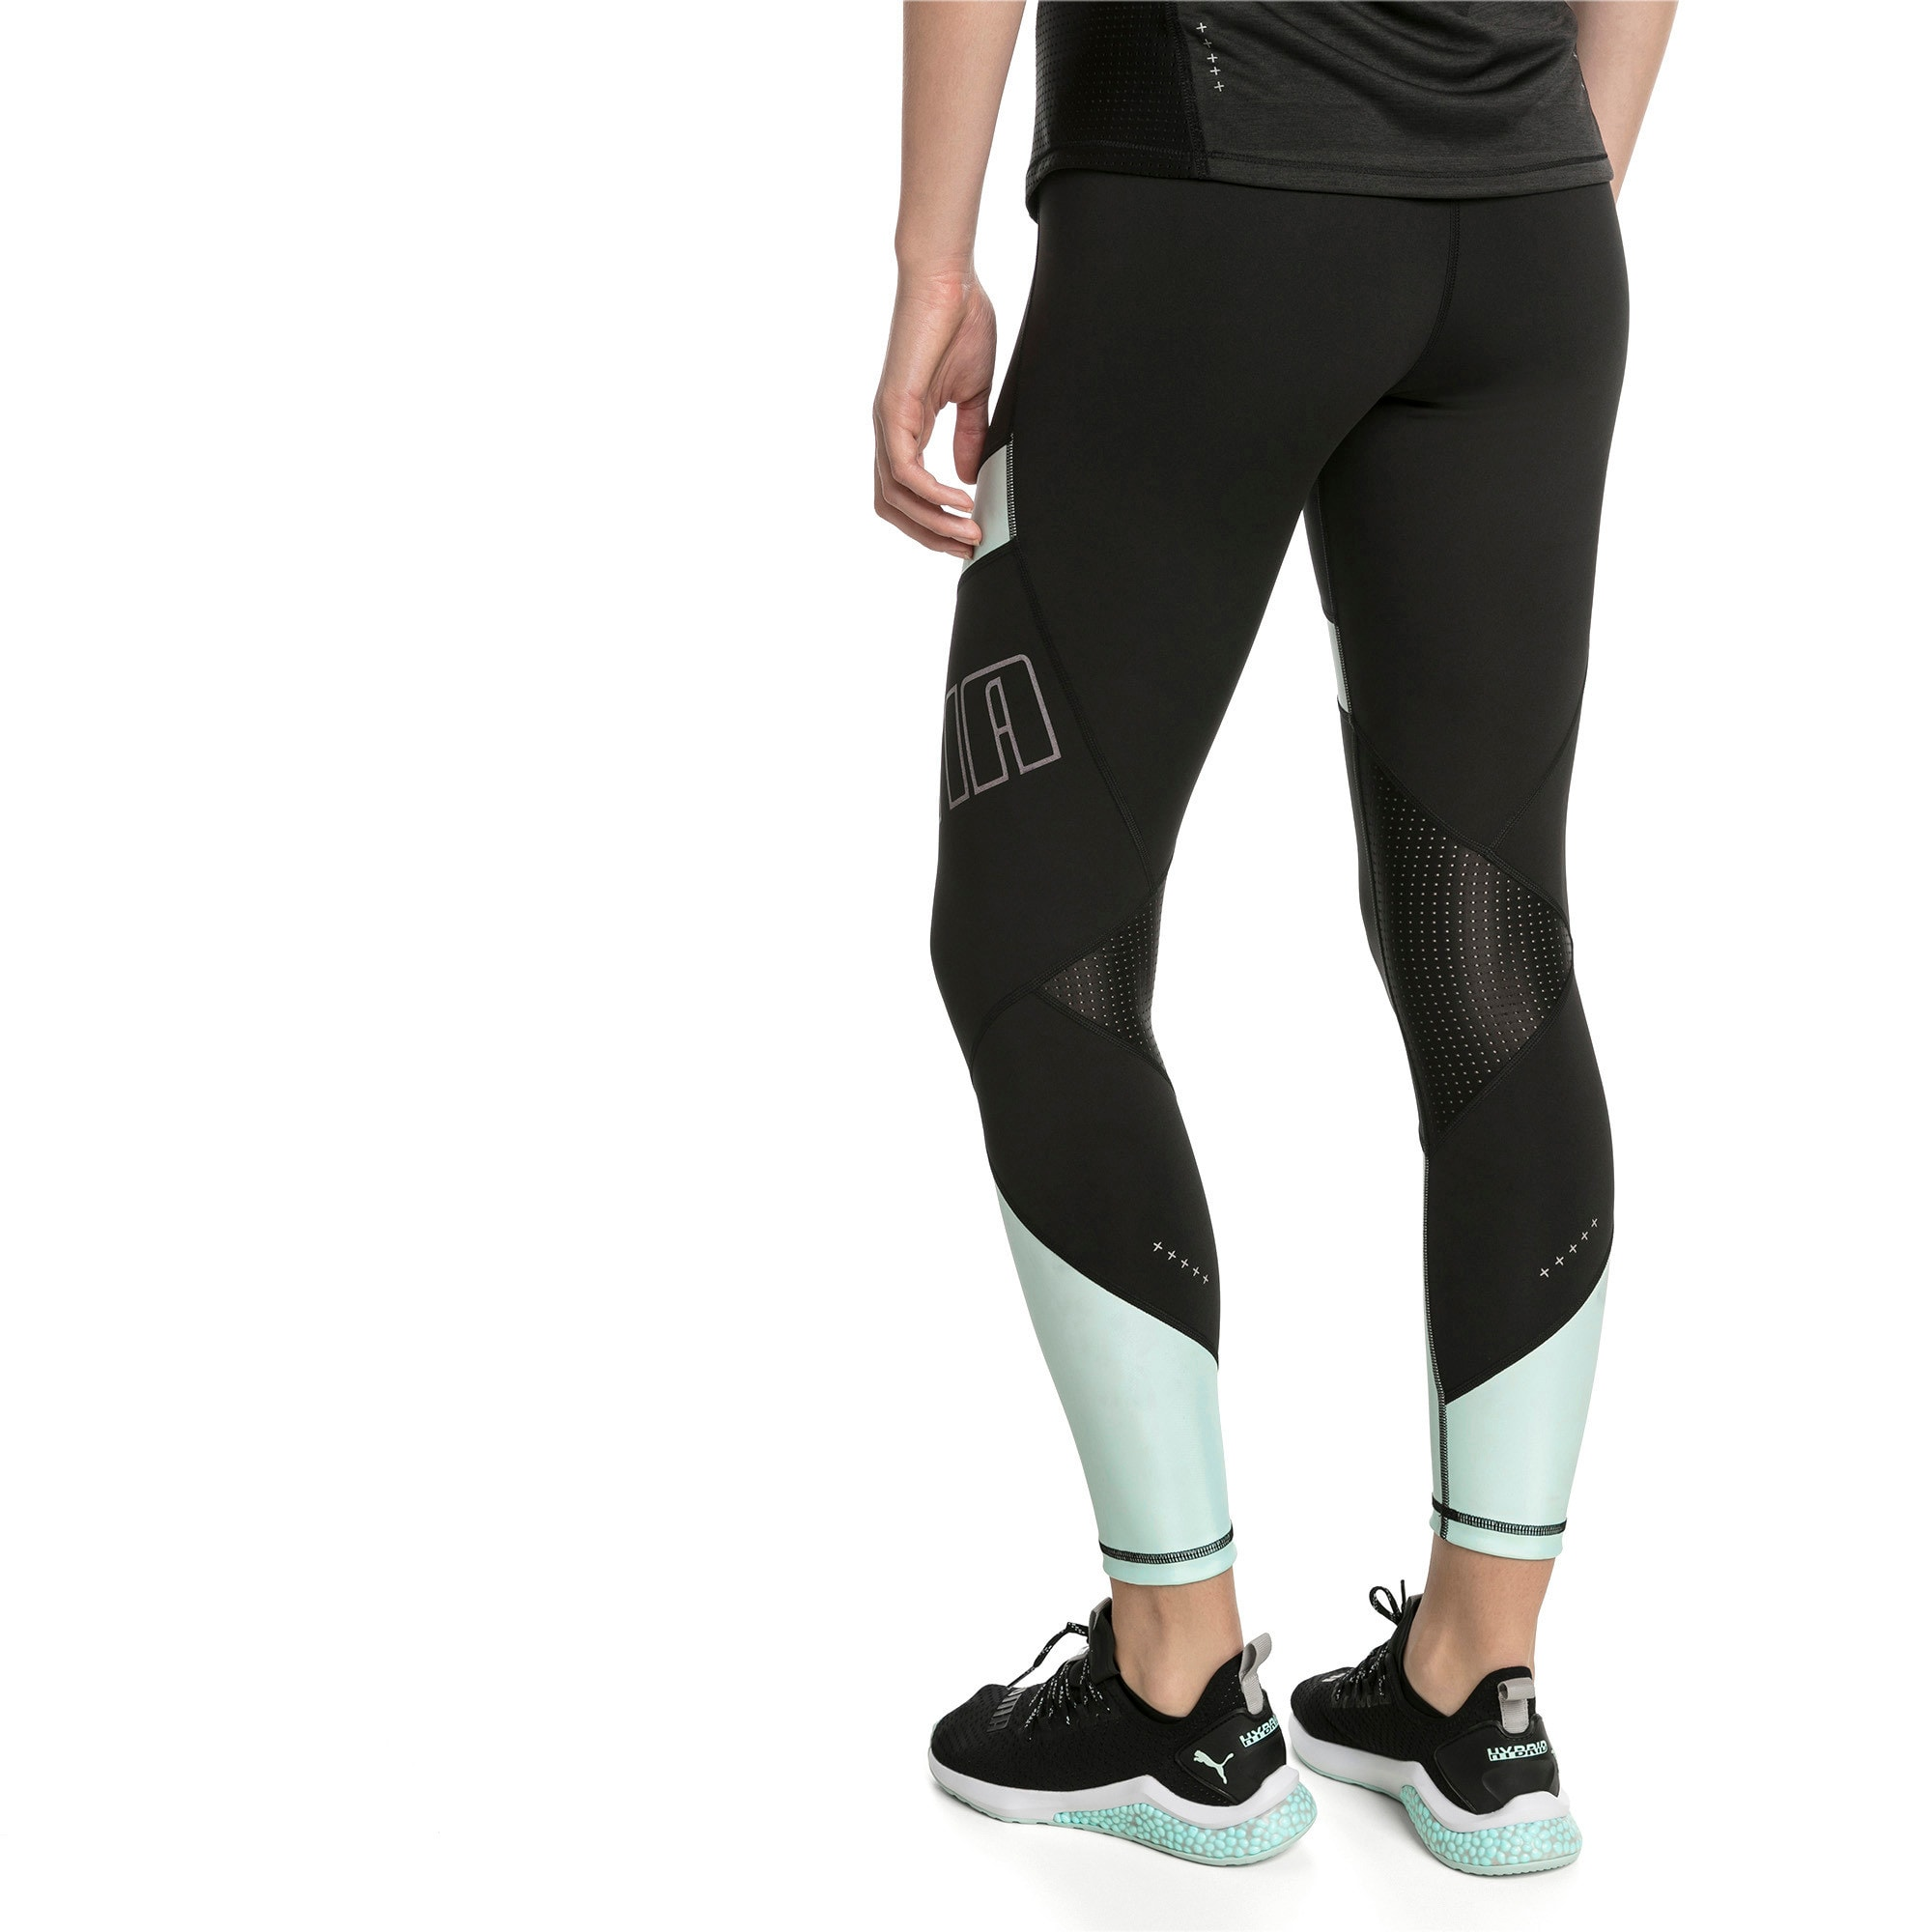 Thumbnail 2 of Elite Speed Women's Leggings, Puma Black-Fair Aqua, medium